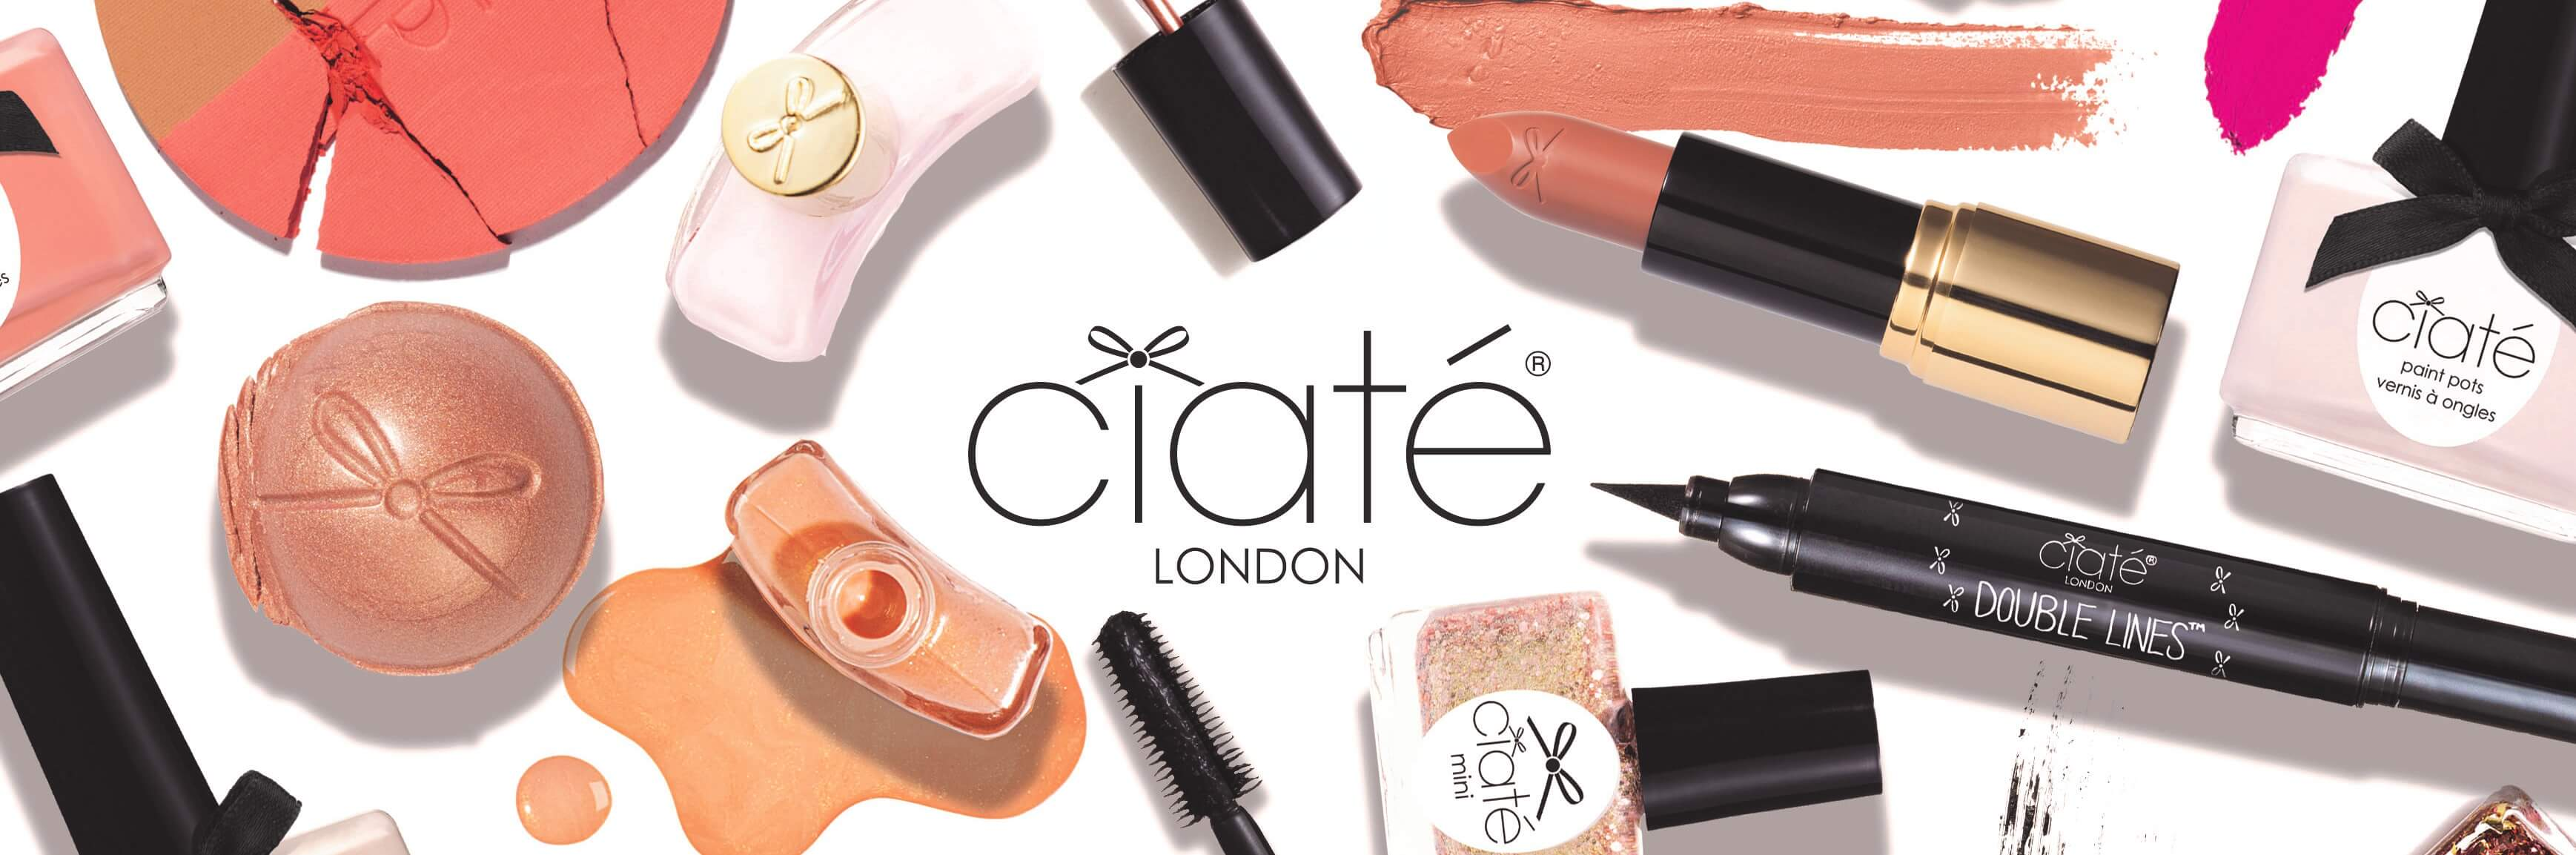 Caite london cosmetic products.